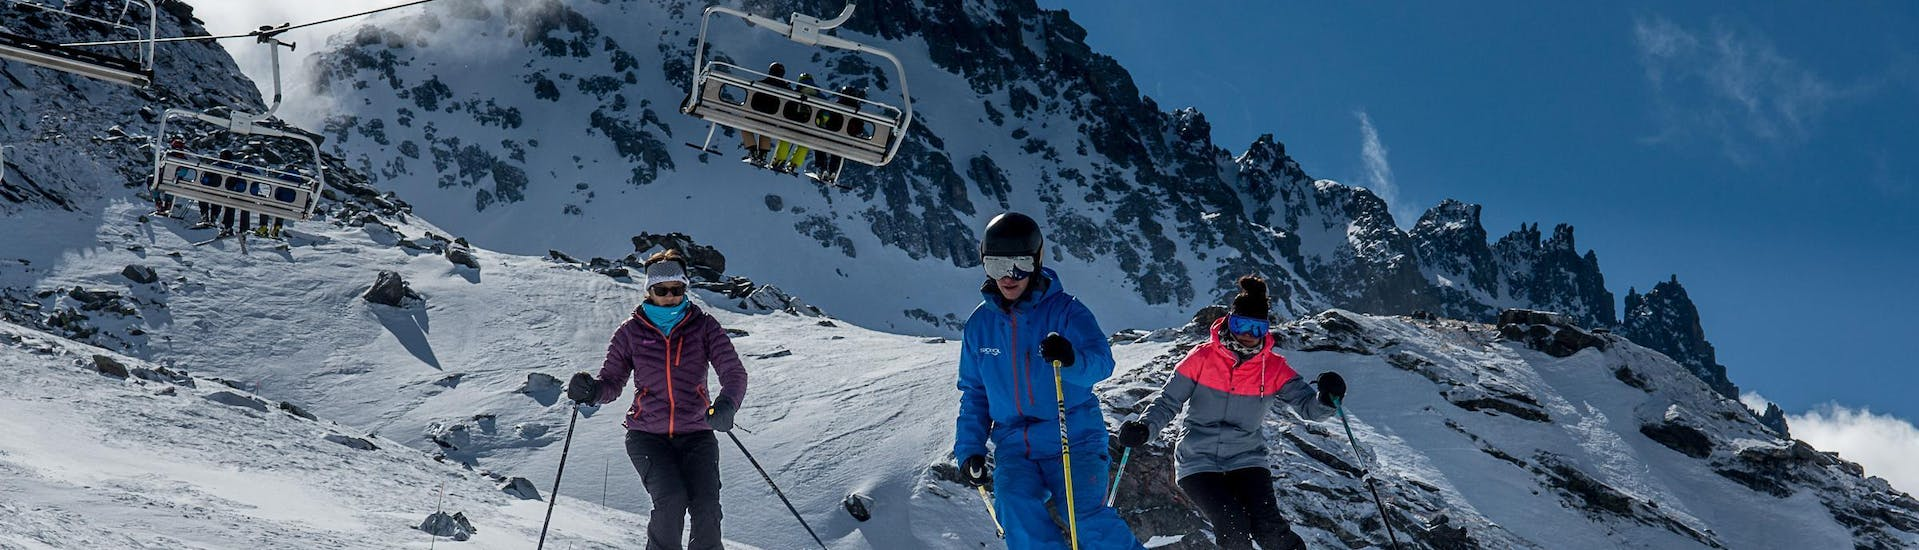 Ski Lessons for Teens & Adults - Equipment incl. - Beginners